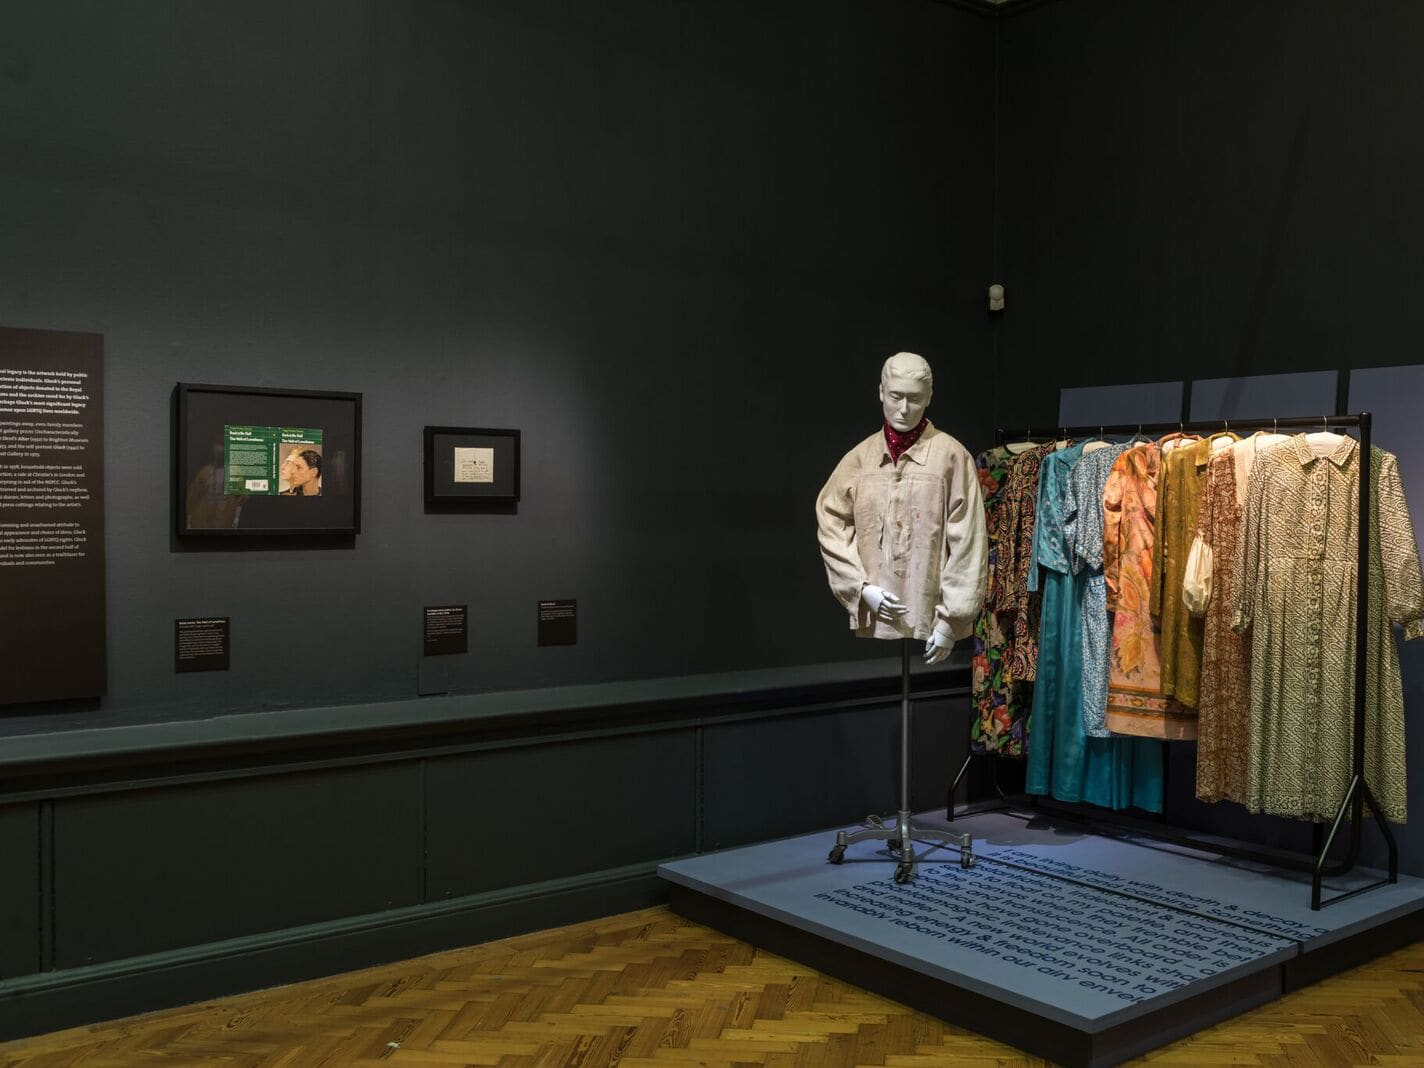 Gluck Art and Identity exhibition - mannequin and clothing display